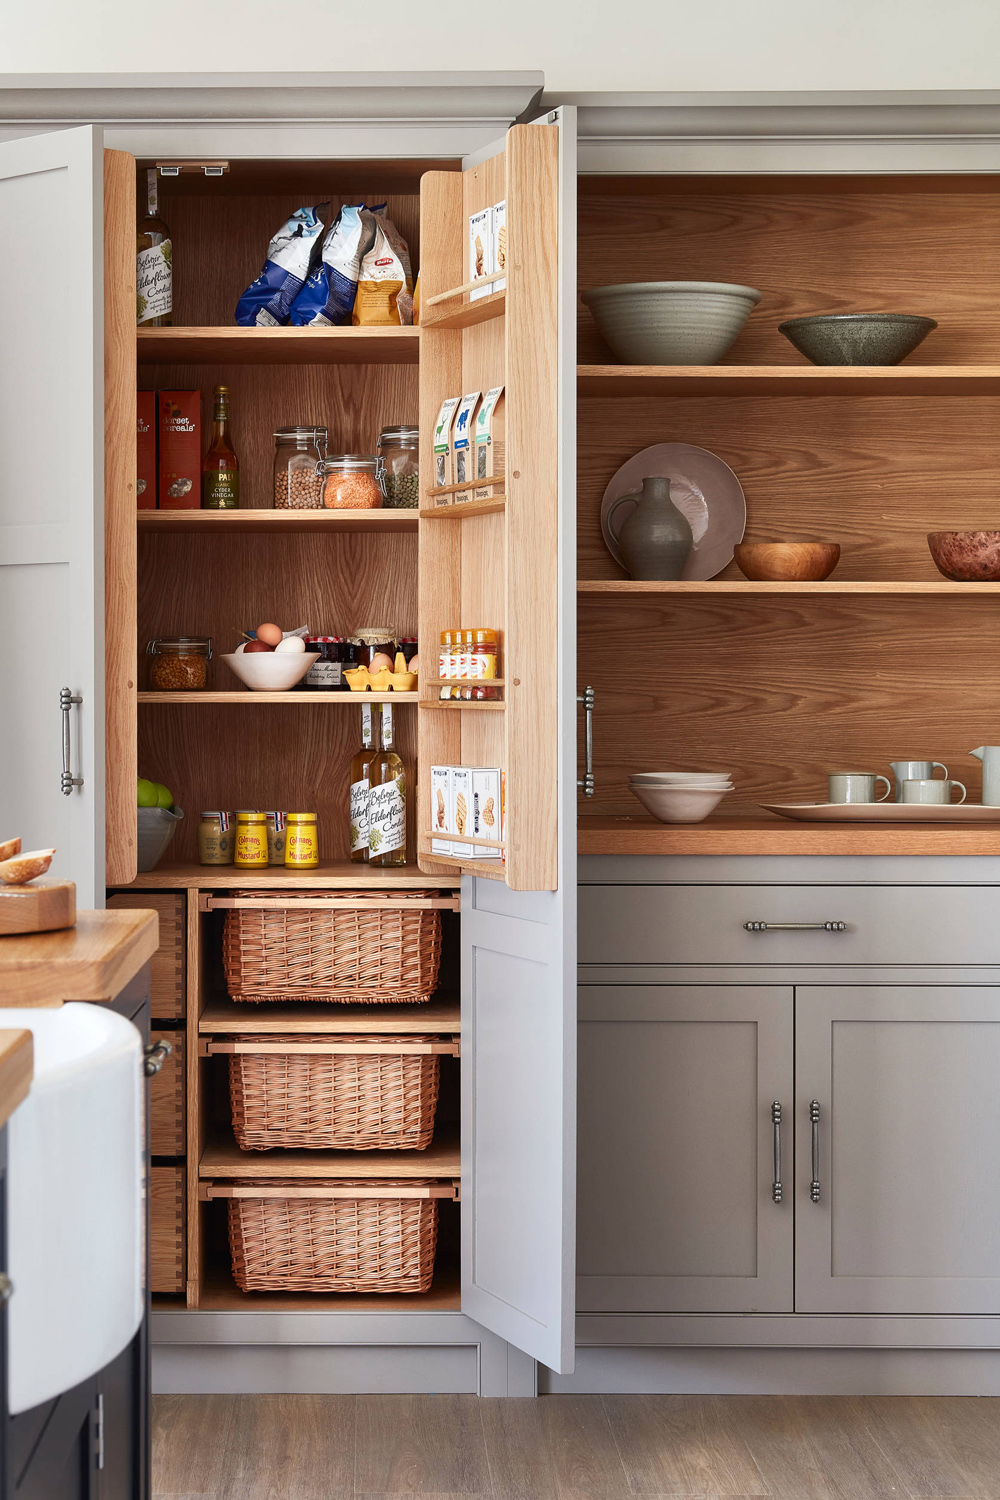 43 Kitchen Pantry Storage Clever Ideas Small Large Pantry Design